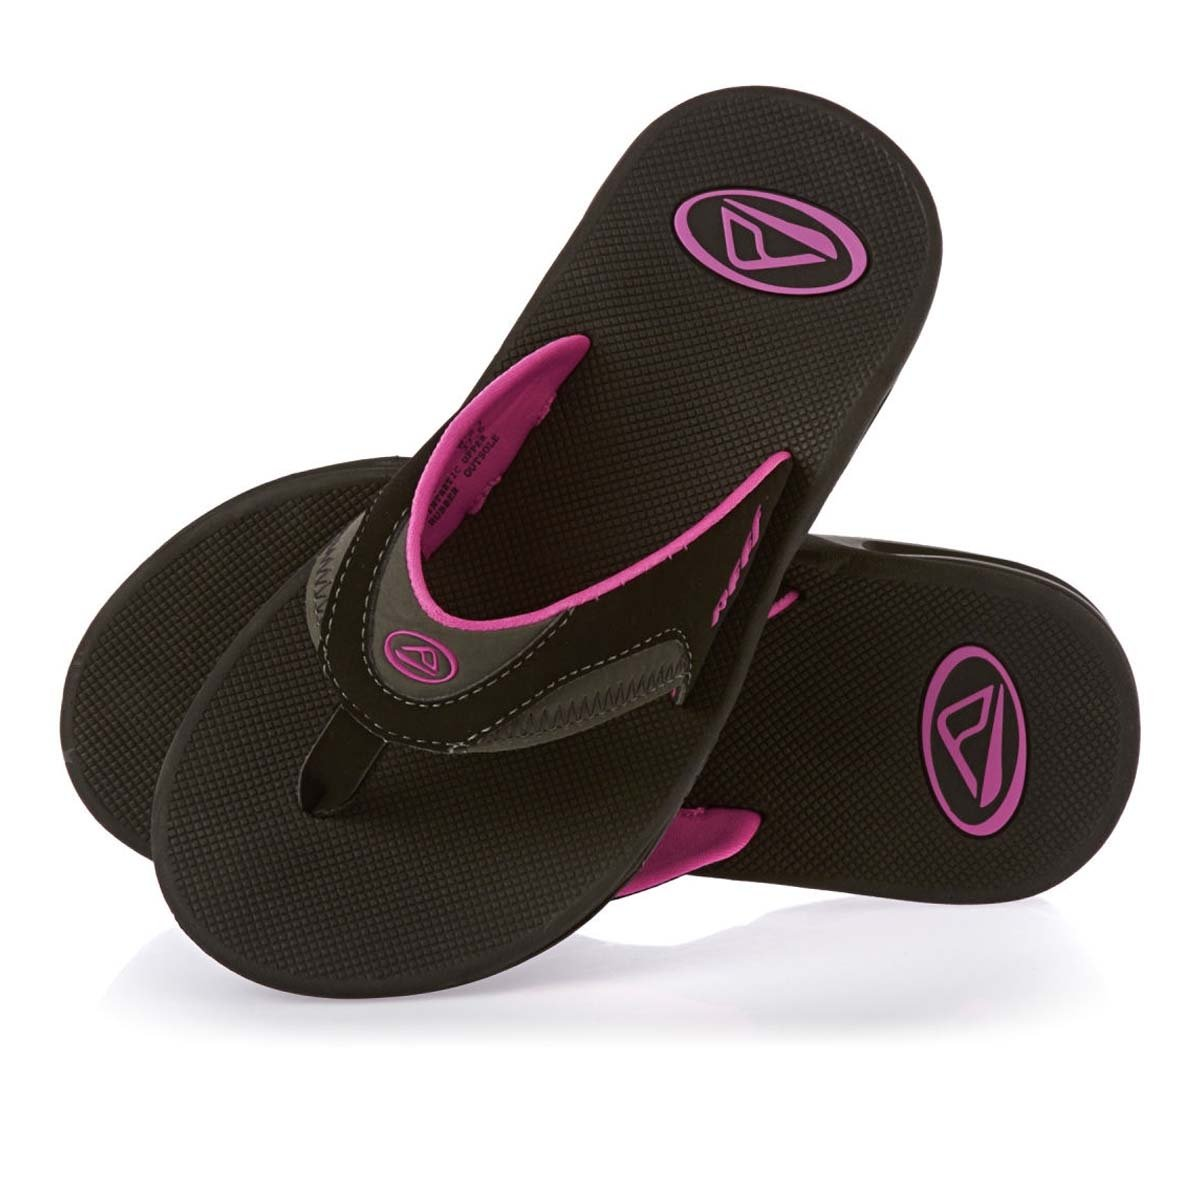 369c08bc11 Chinelo Reef Girls Fanning - Compre Agora